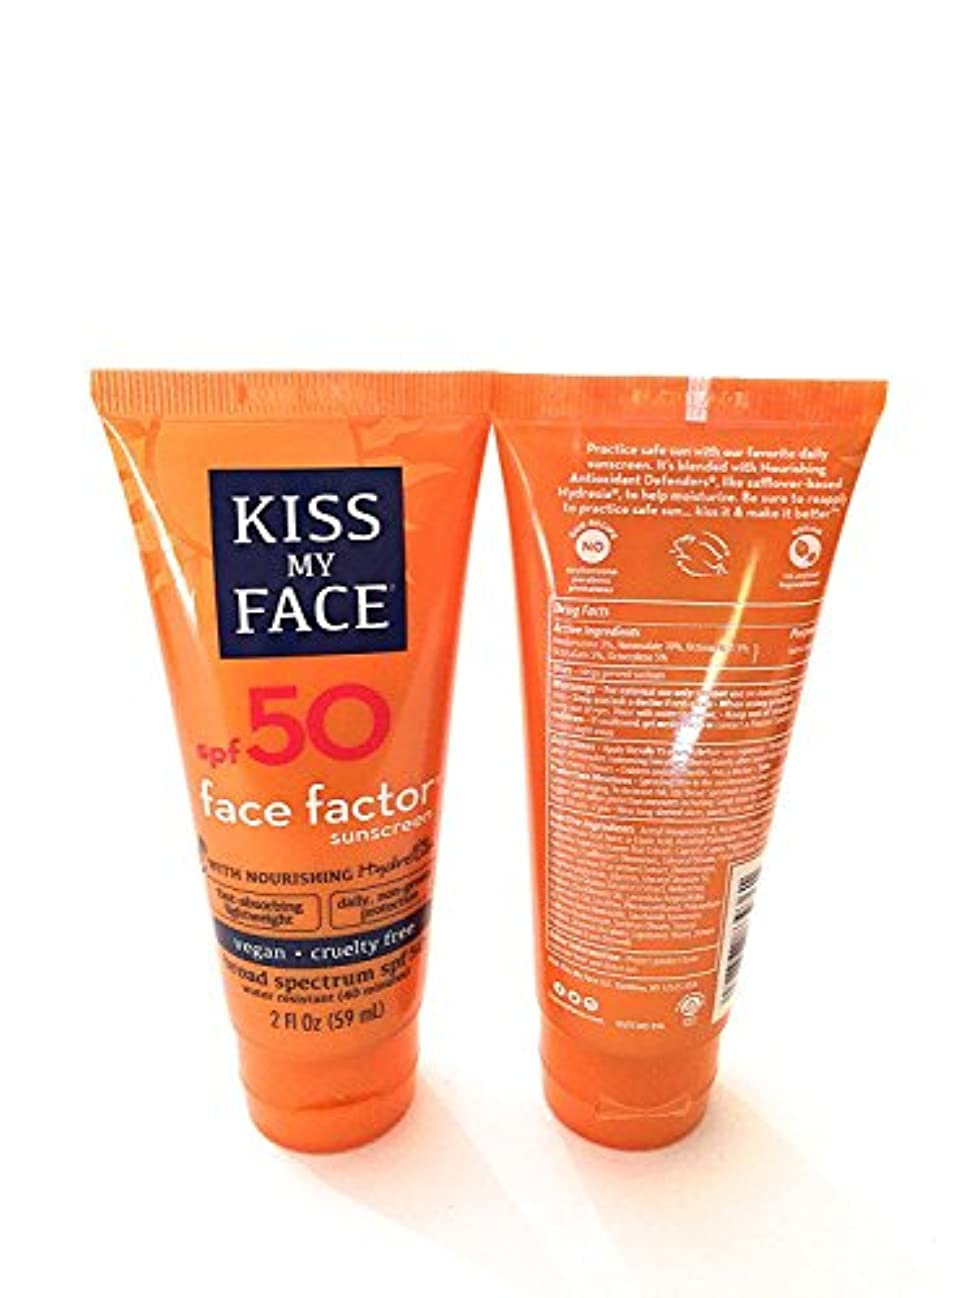 Kiss My Face Face Factor Face & Neck Sunscreen Protection SPF 50 2 oz (Pack of 2) by Kiss My Face